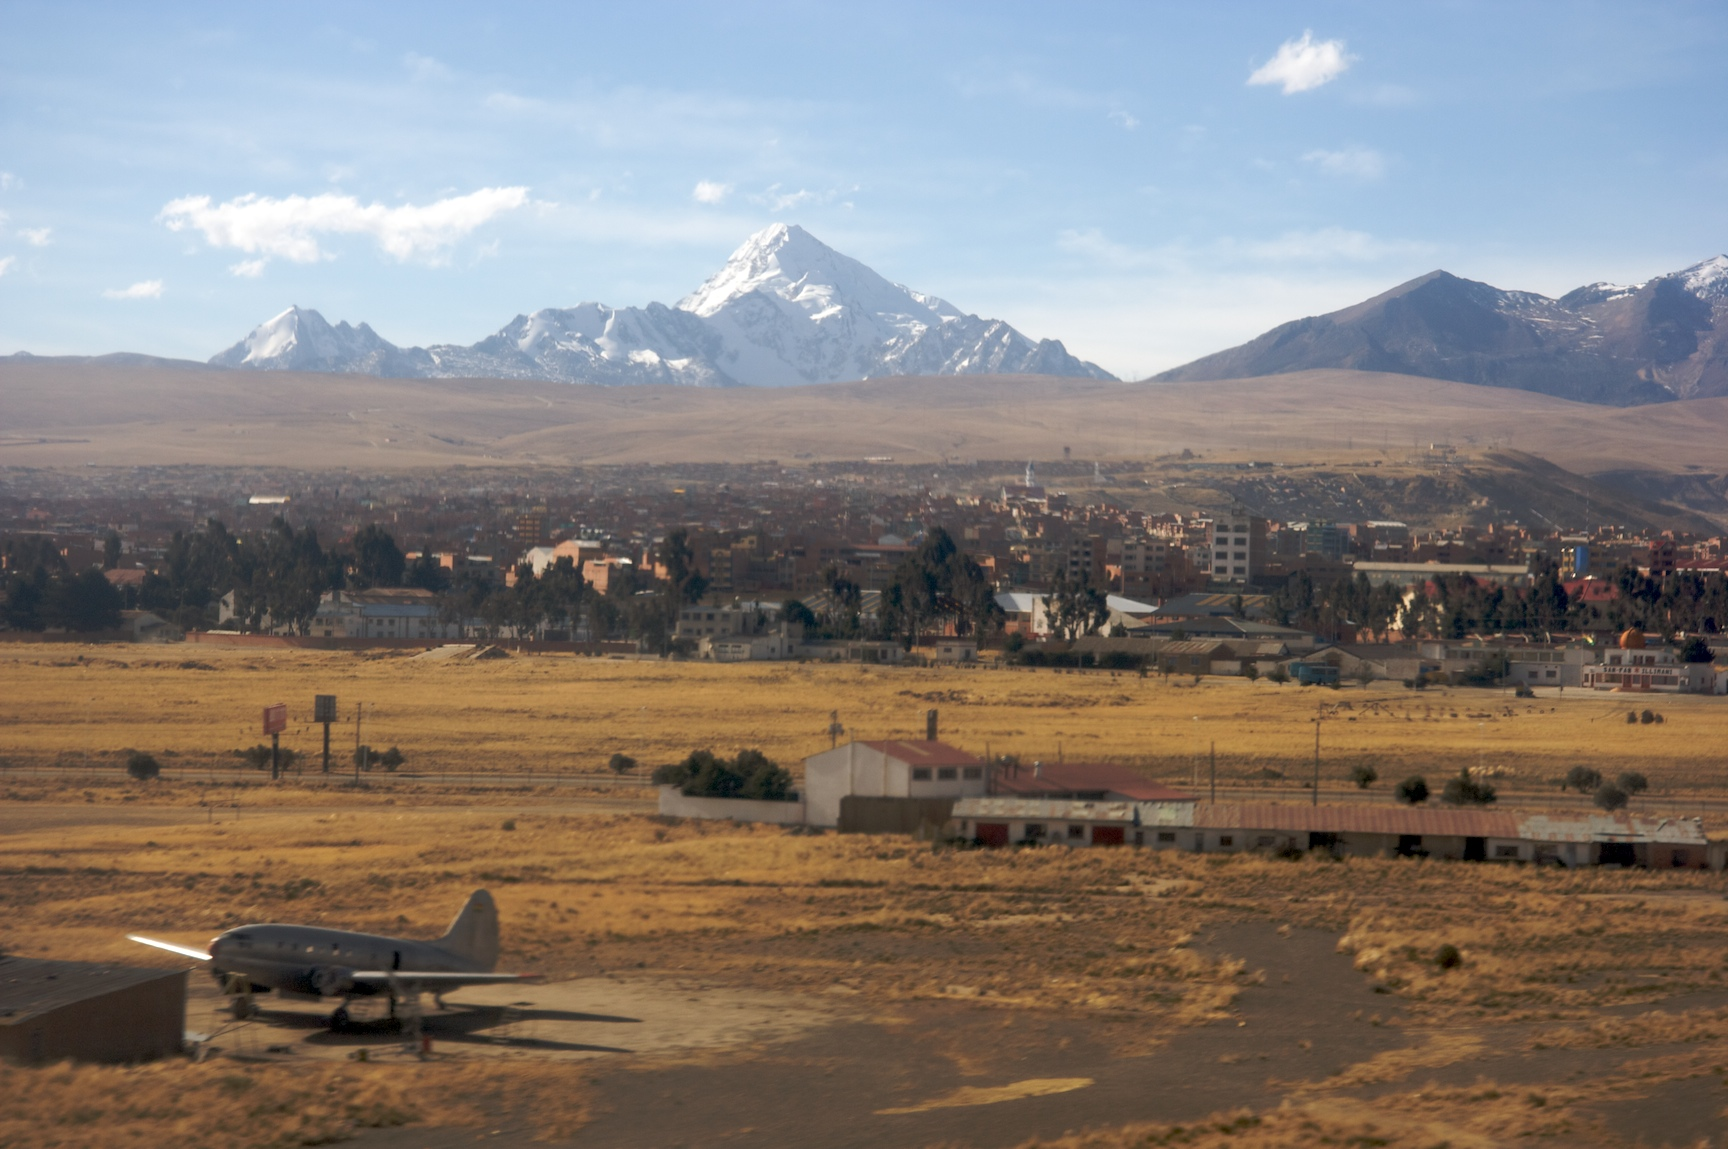 Archivo:Landing at the La Paz airport (El Alto).jpg - Wikipedia, la ...